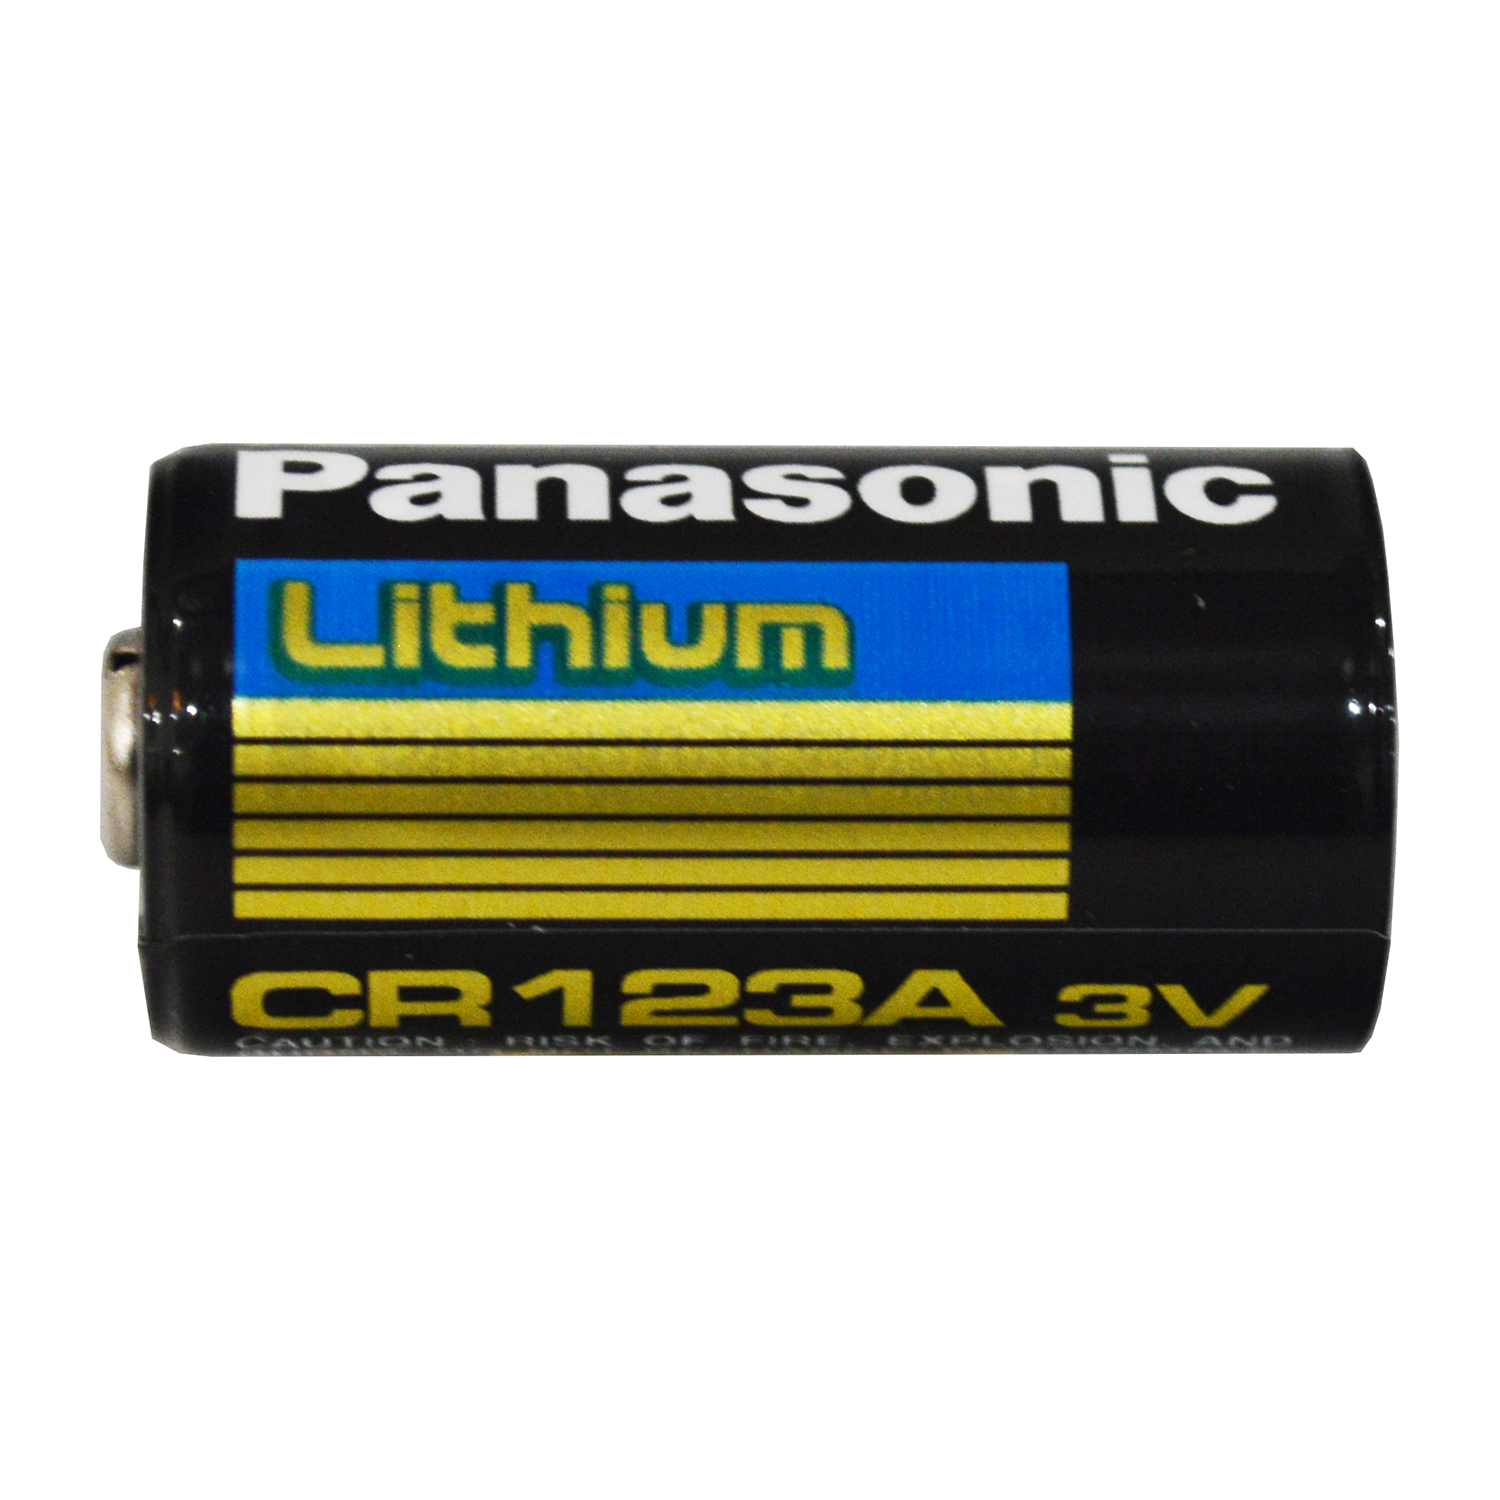 Panasonic CR123A 3V Long Lasting Lithium Battery